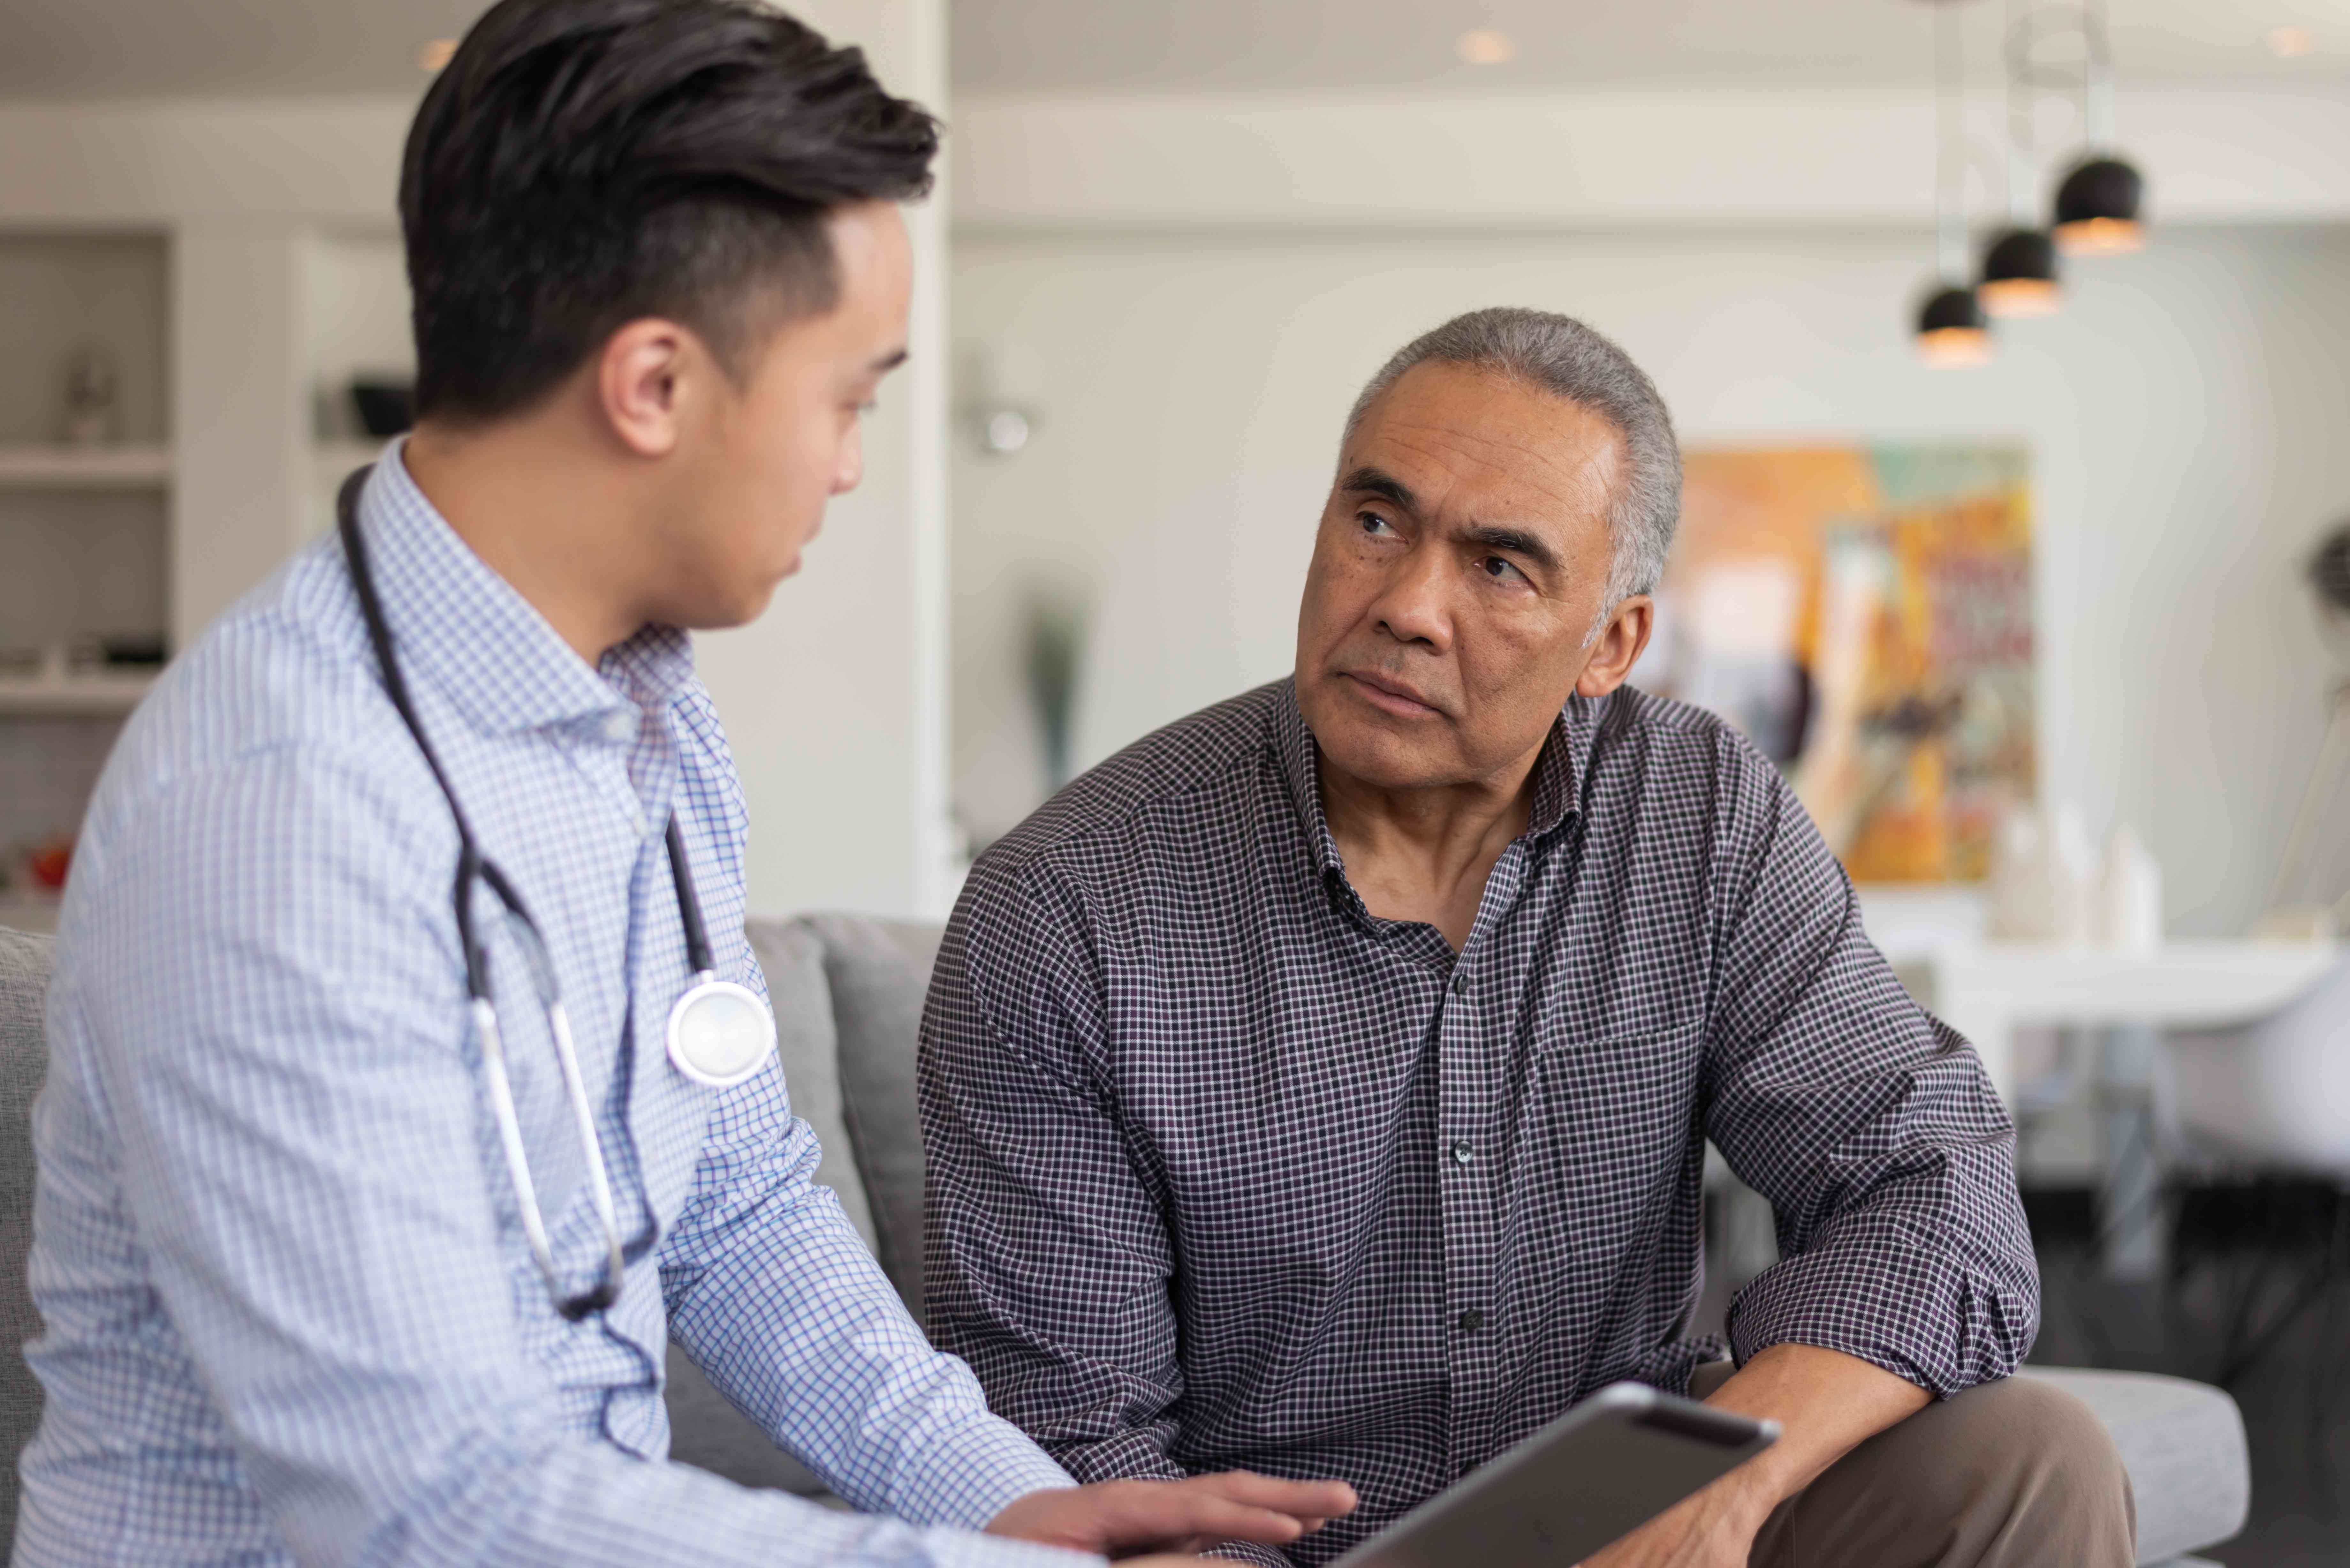 A doctor and a patient discuss depression